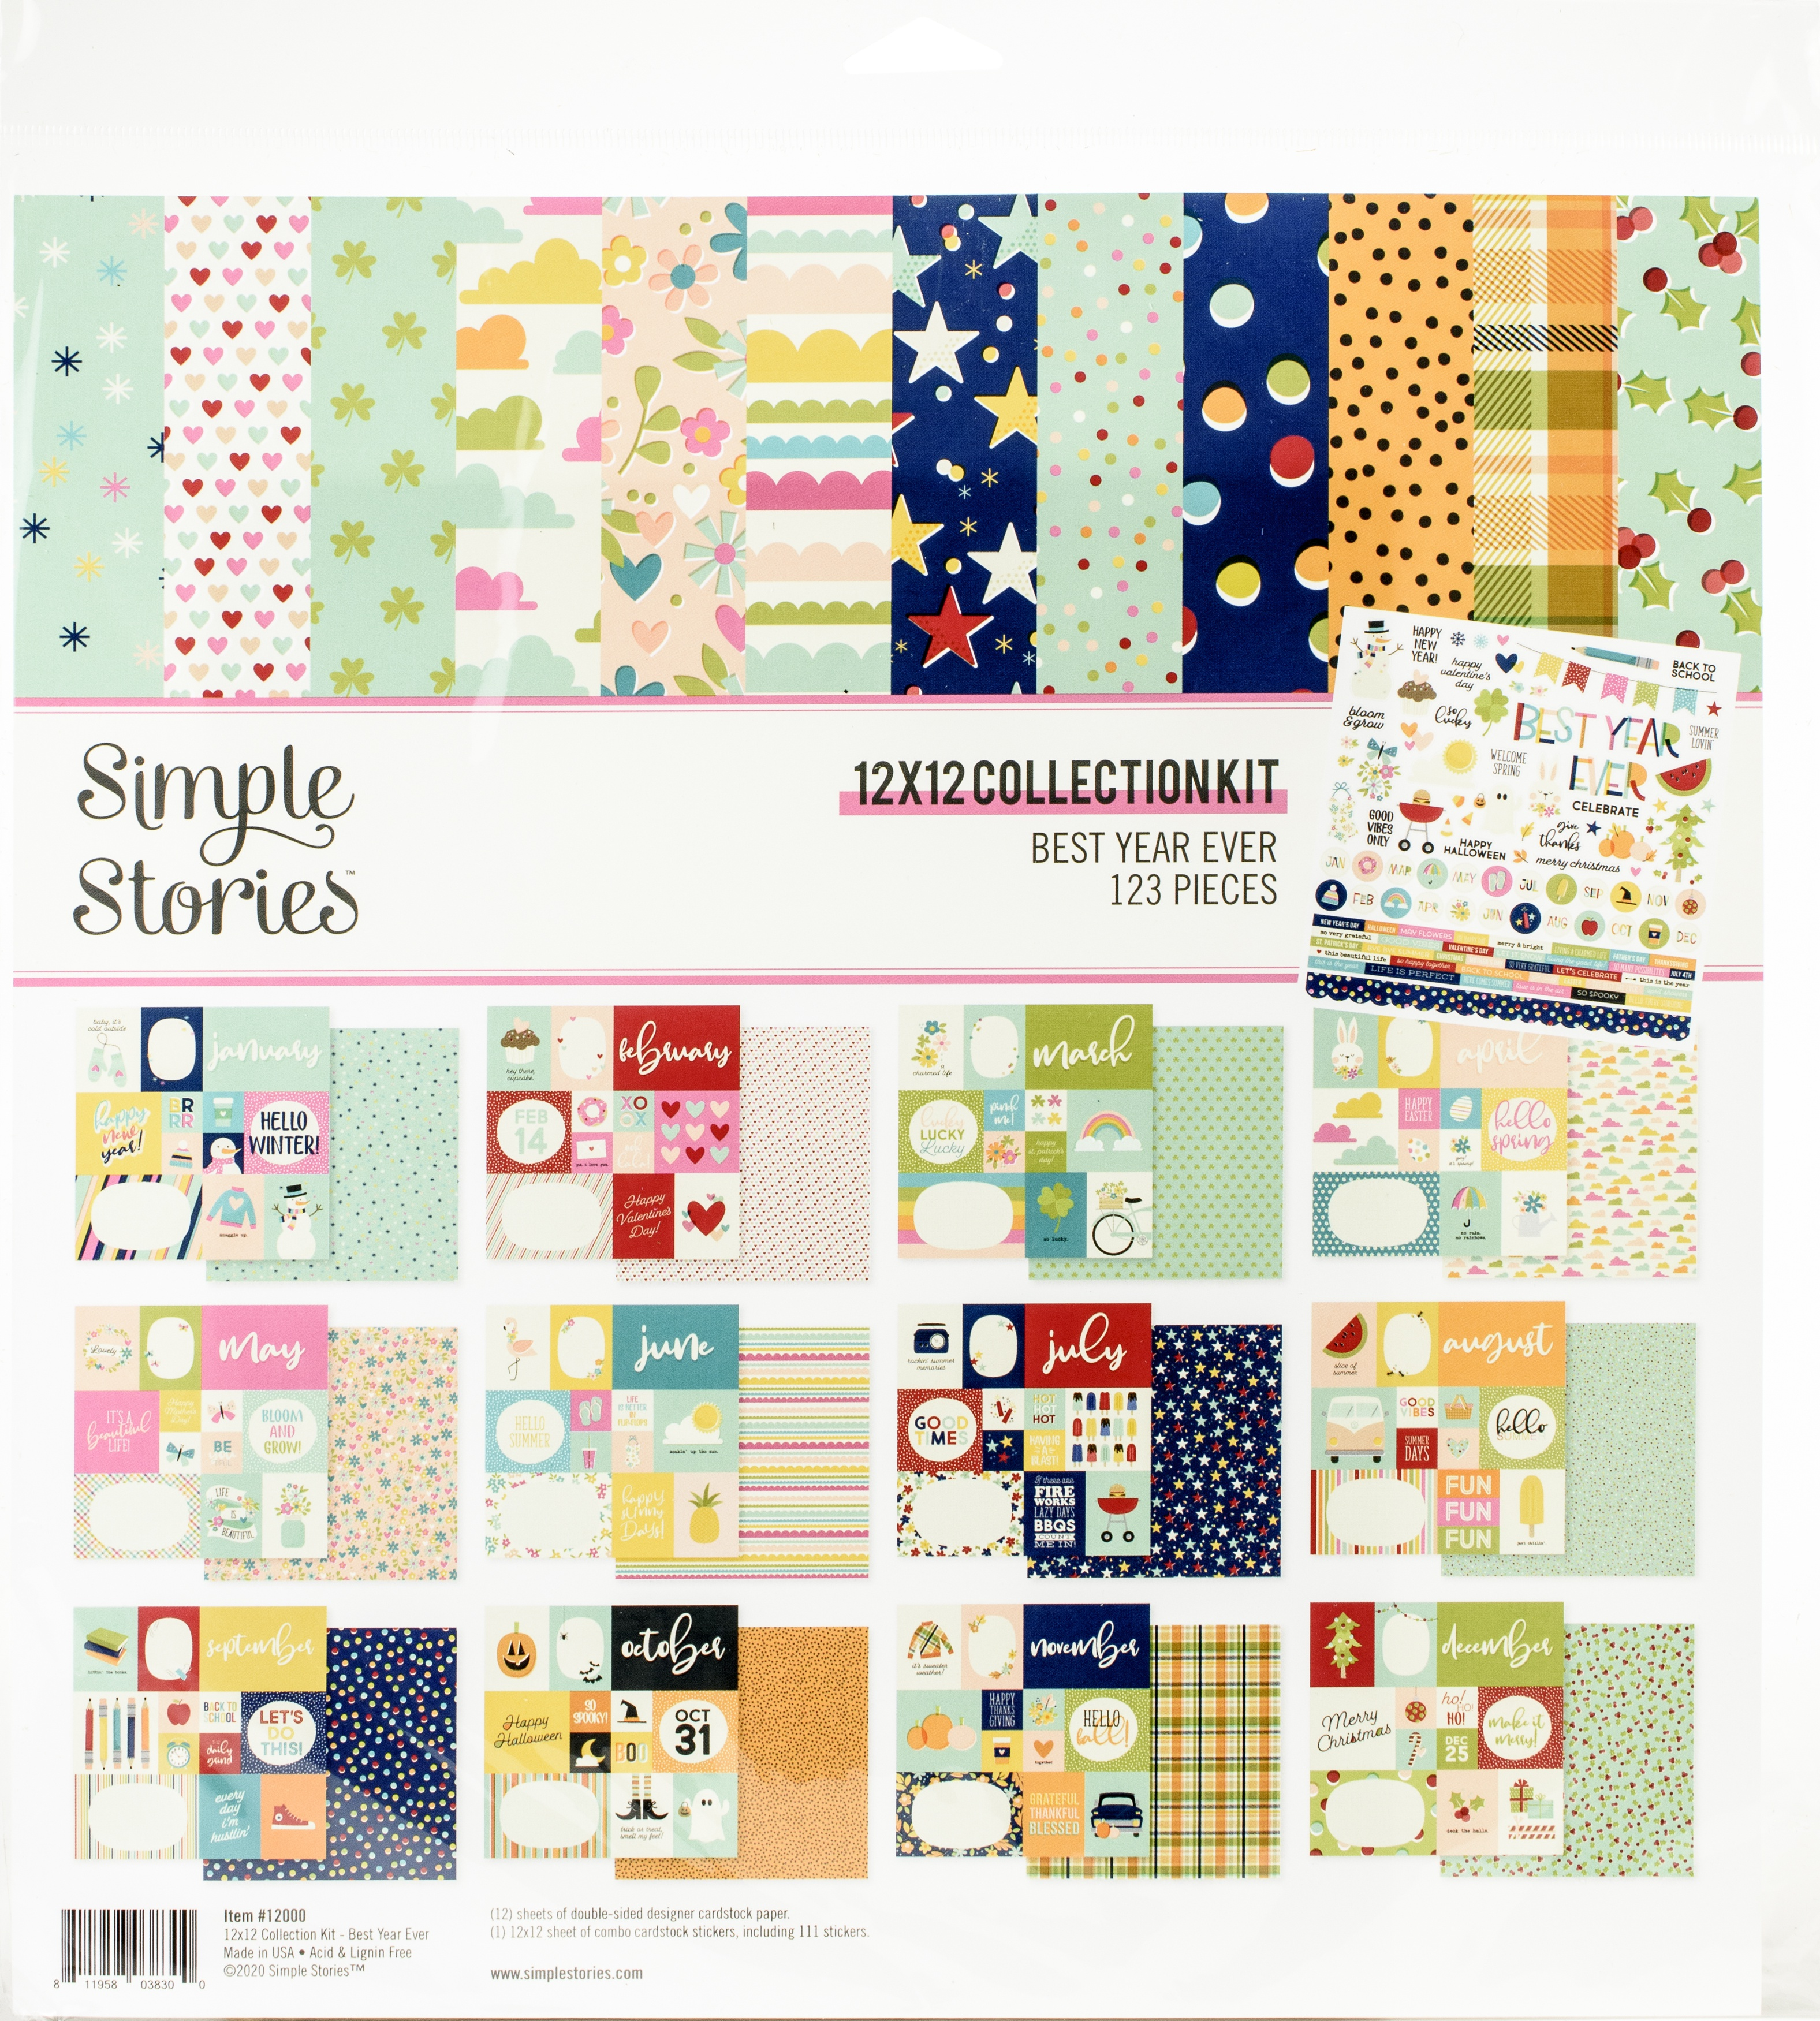 Simple Stories Collection Kit 12X12-Best Year Ever